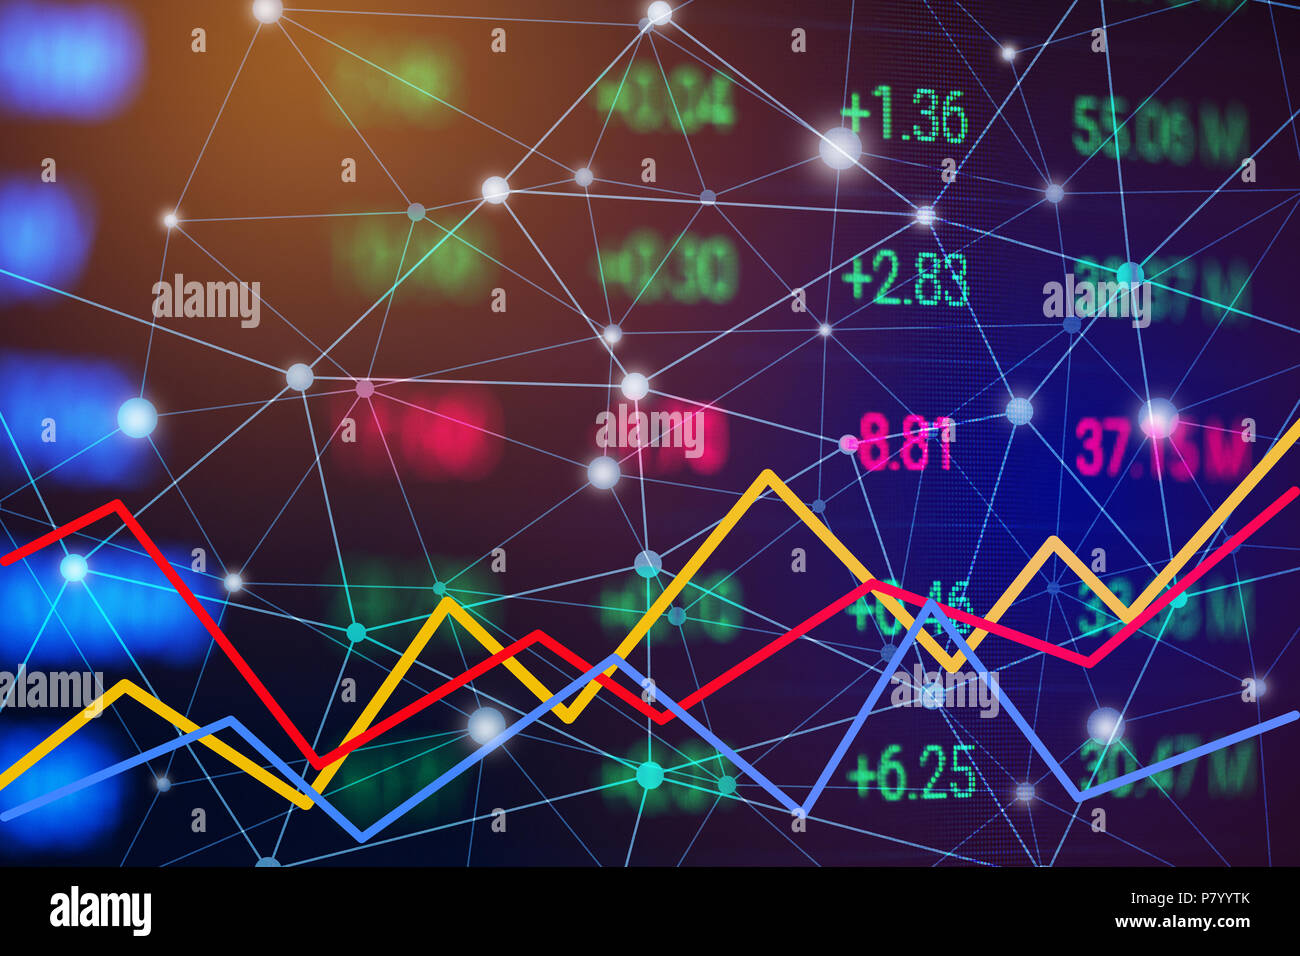 Stock market chart with line graph. Trend chart of bullish and bearish. Financial and Business Investment trading concept. Money currency and cryptocu - Stock Image